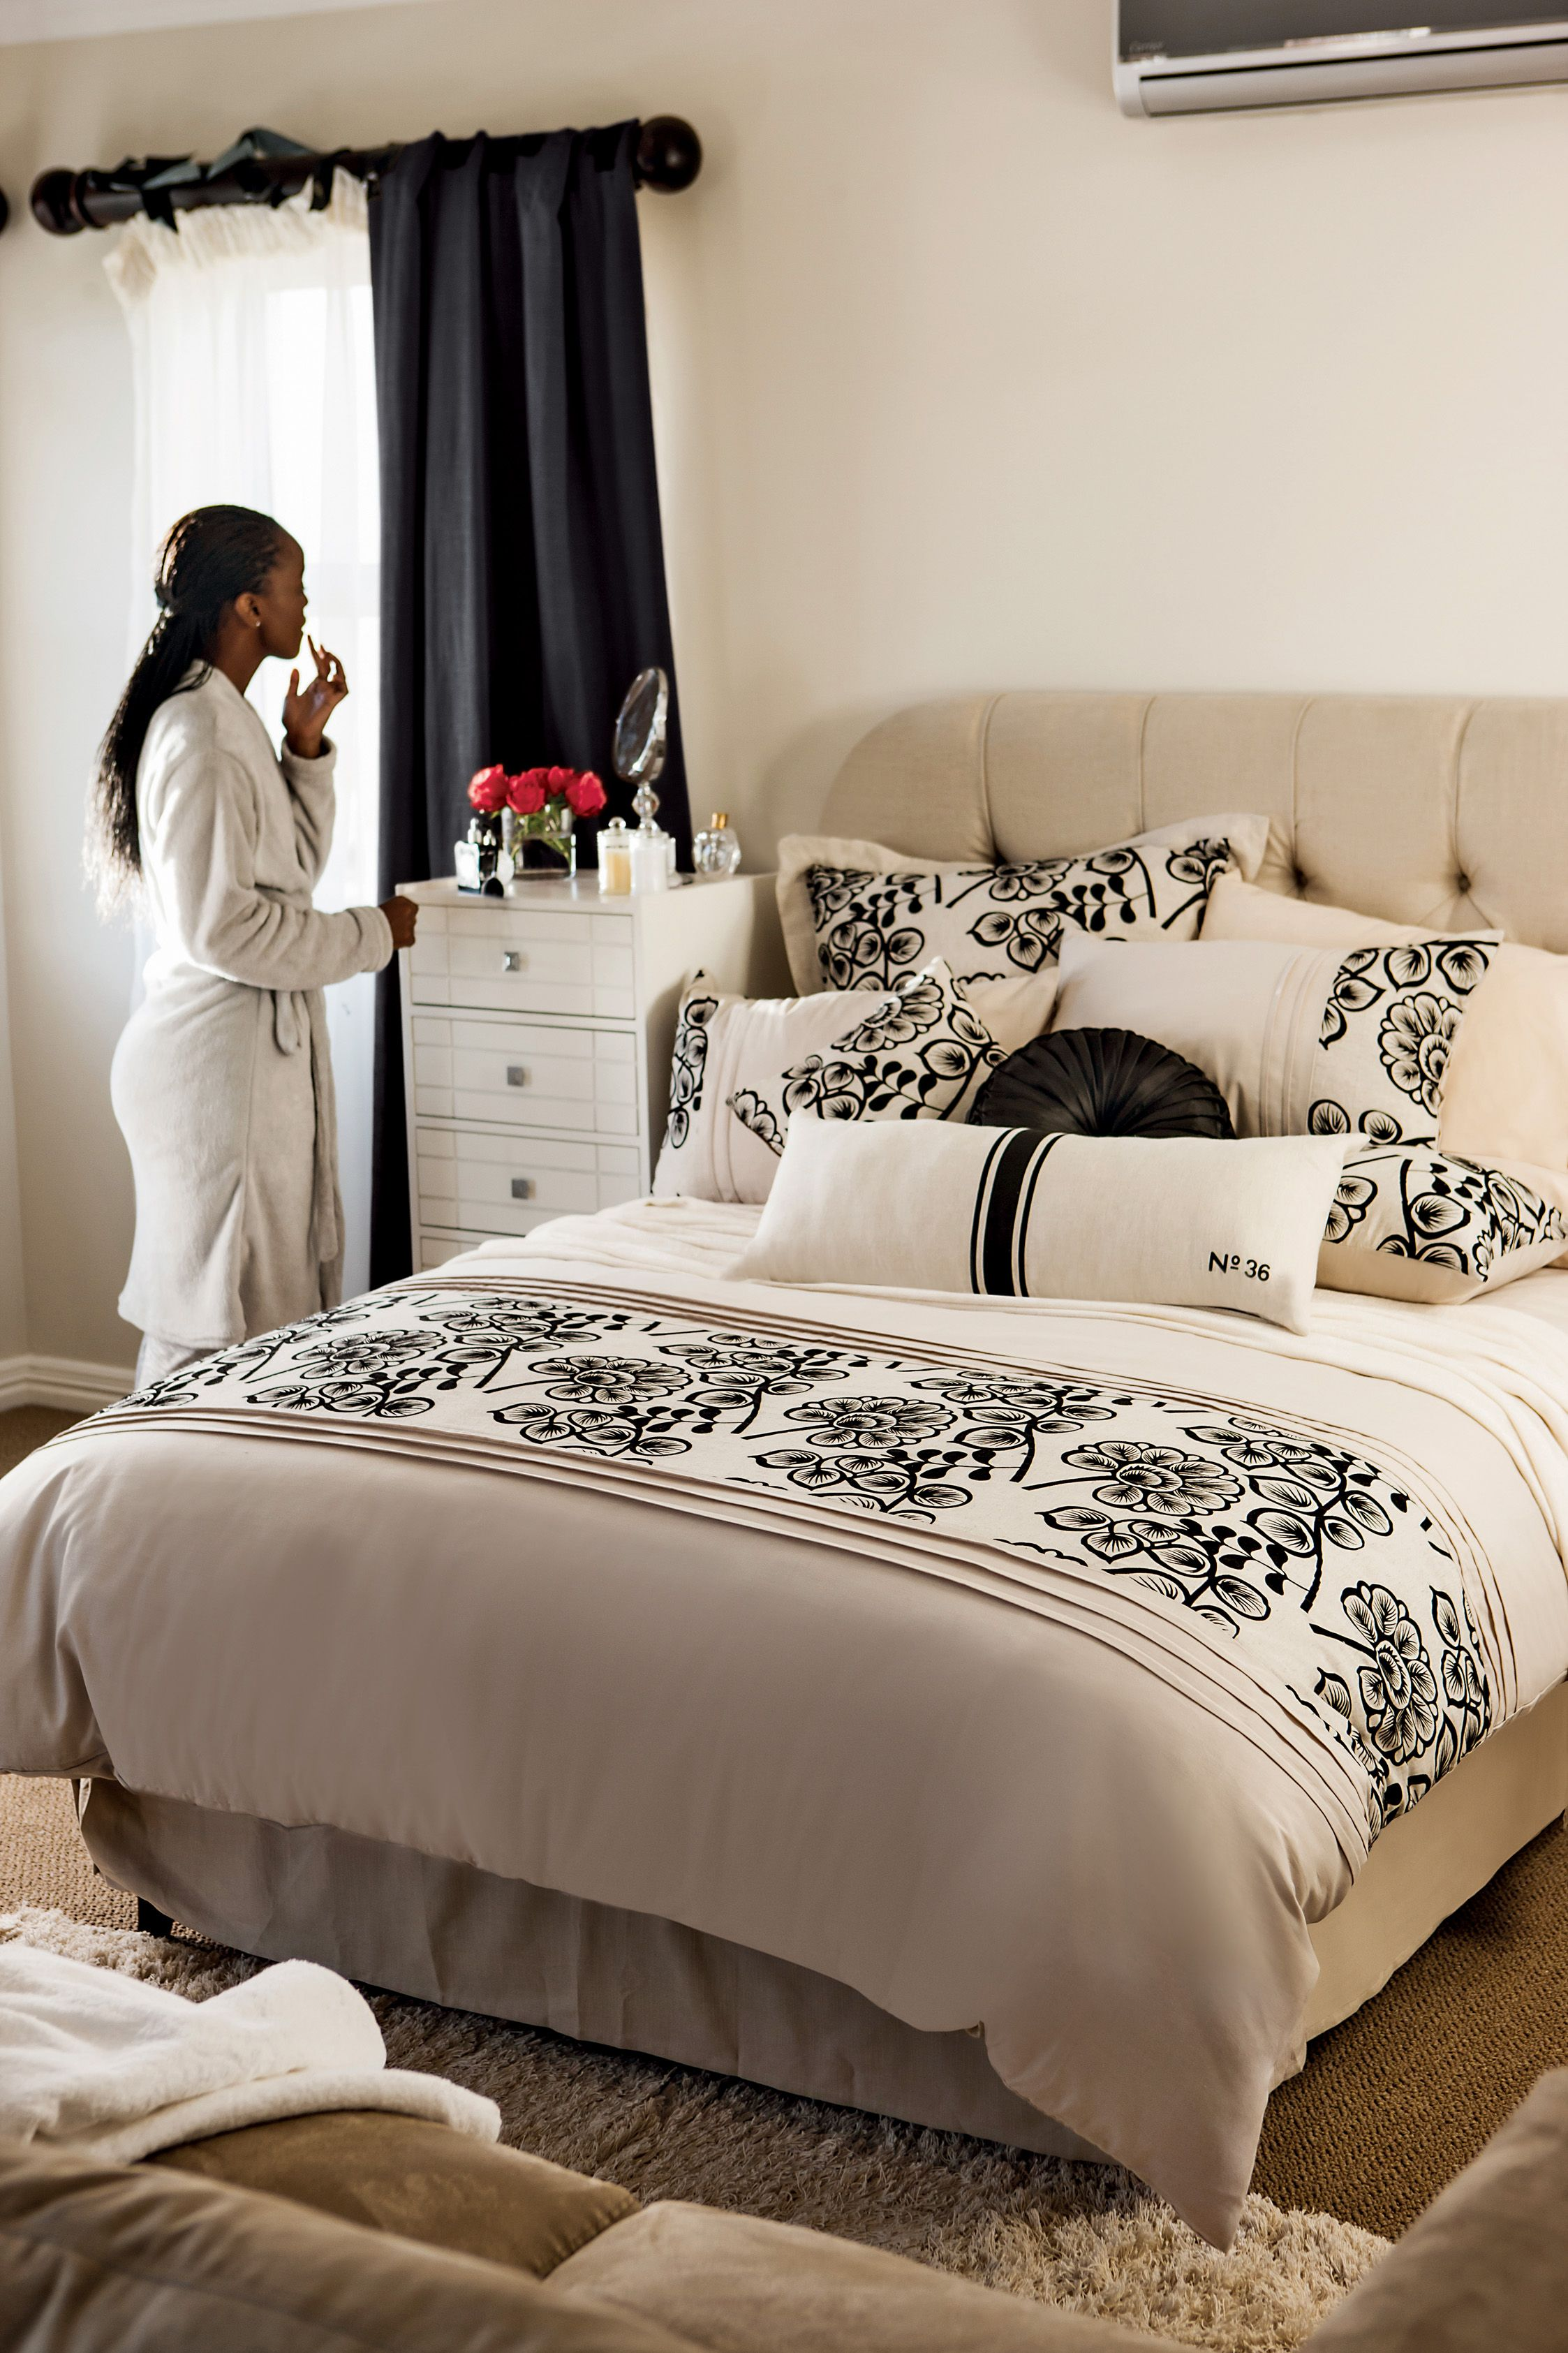 Mr price home bedroom view our range at for Bedroom items